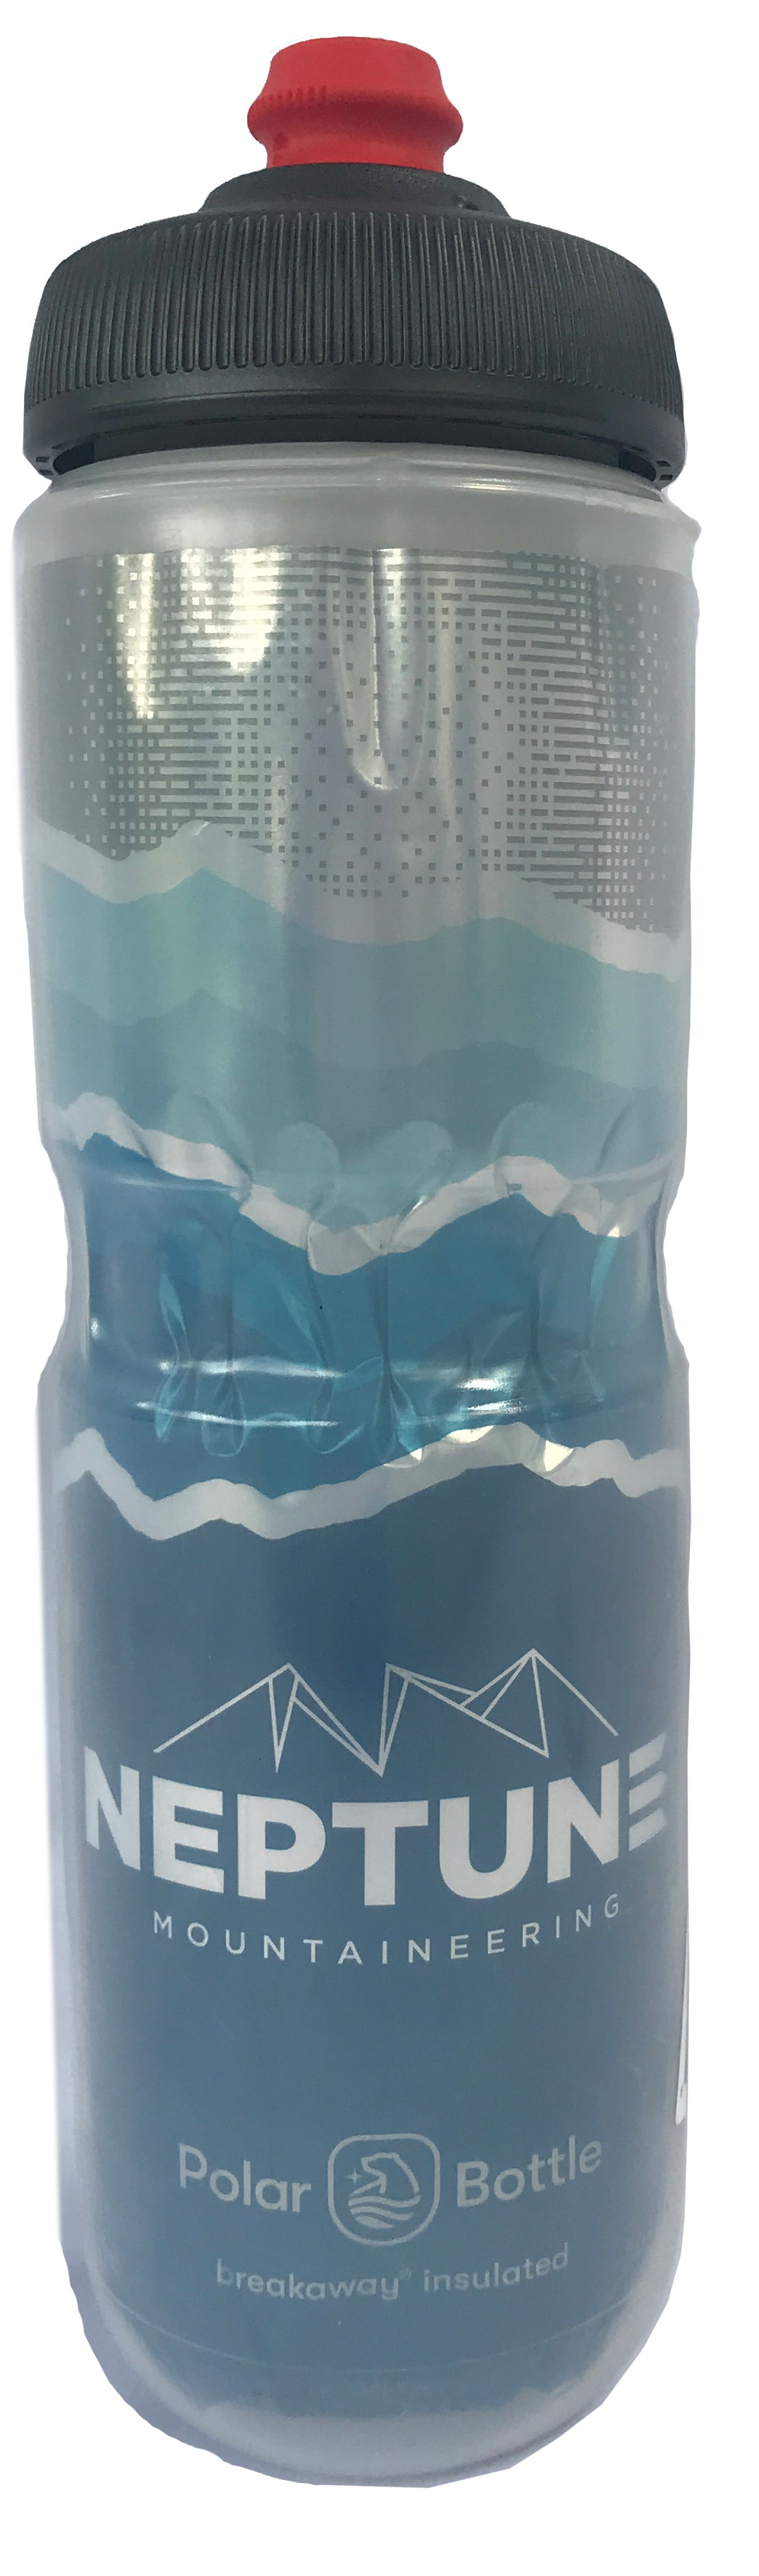 Neptune Mountaineering Insulated Polar Bottle